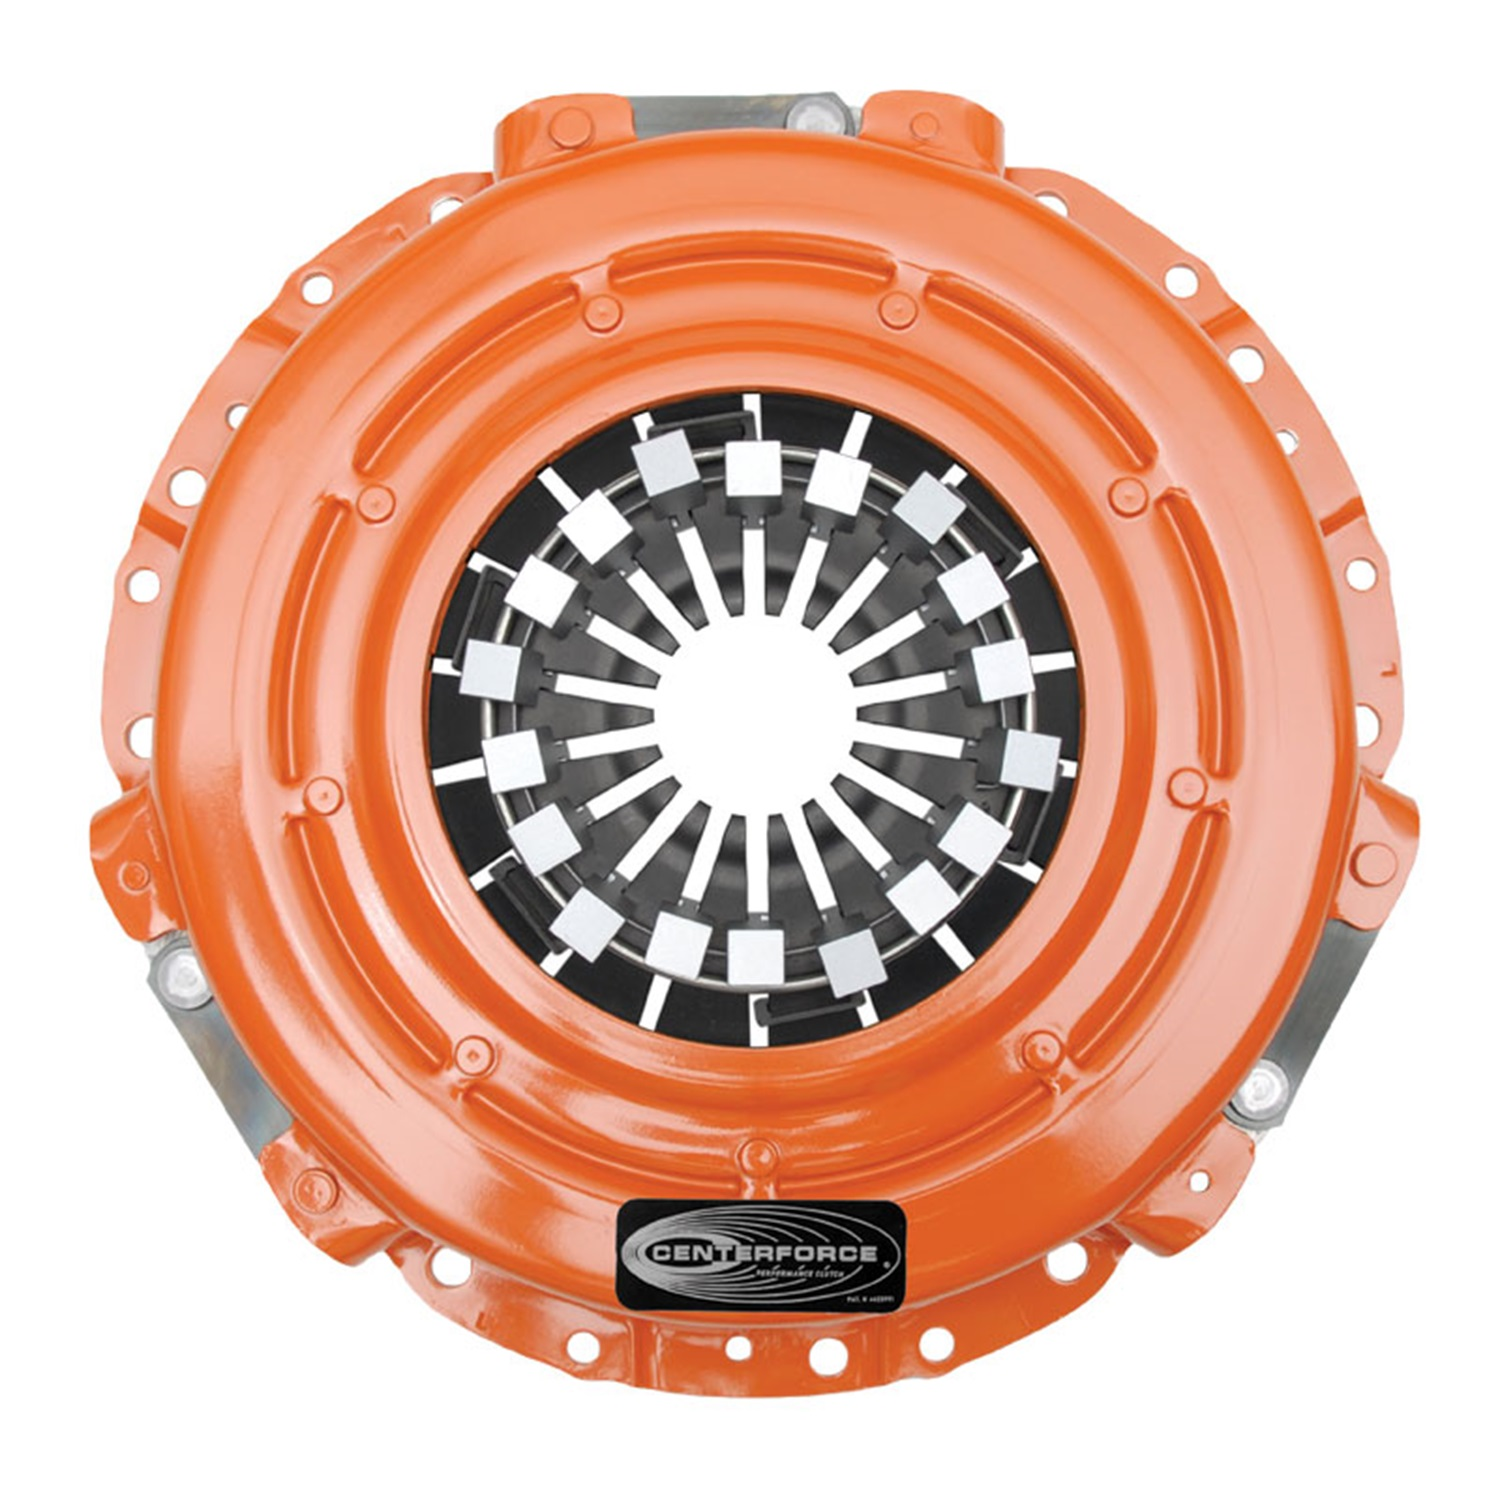 Centerforce CFT361675 Centerforce(R) II, Clutch Pressure Plate